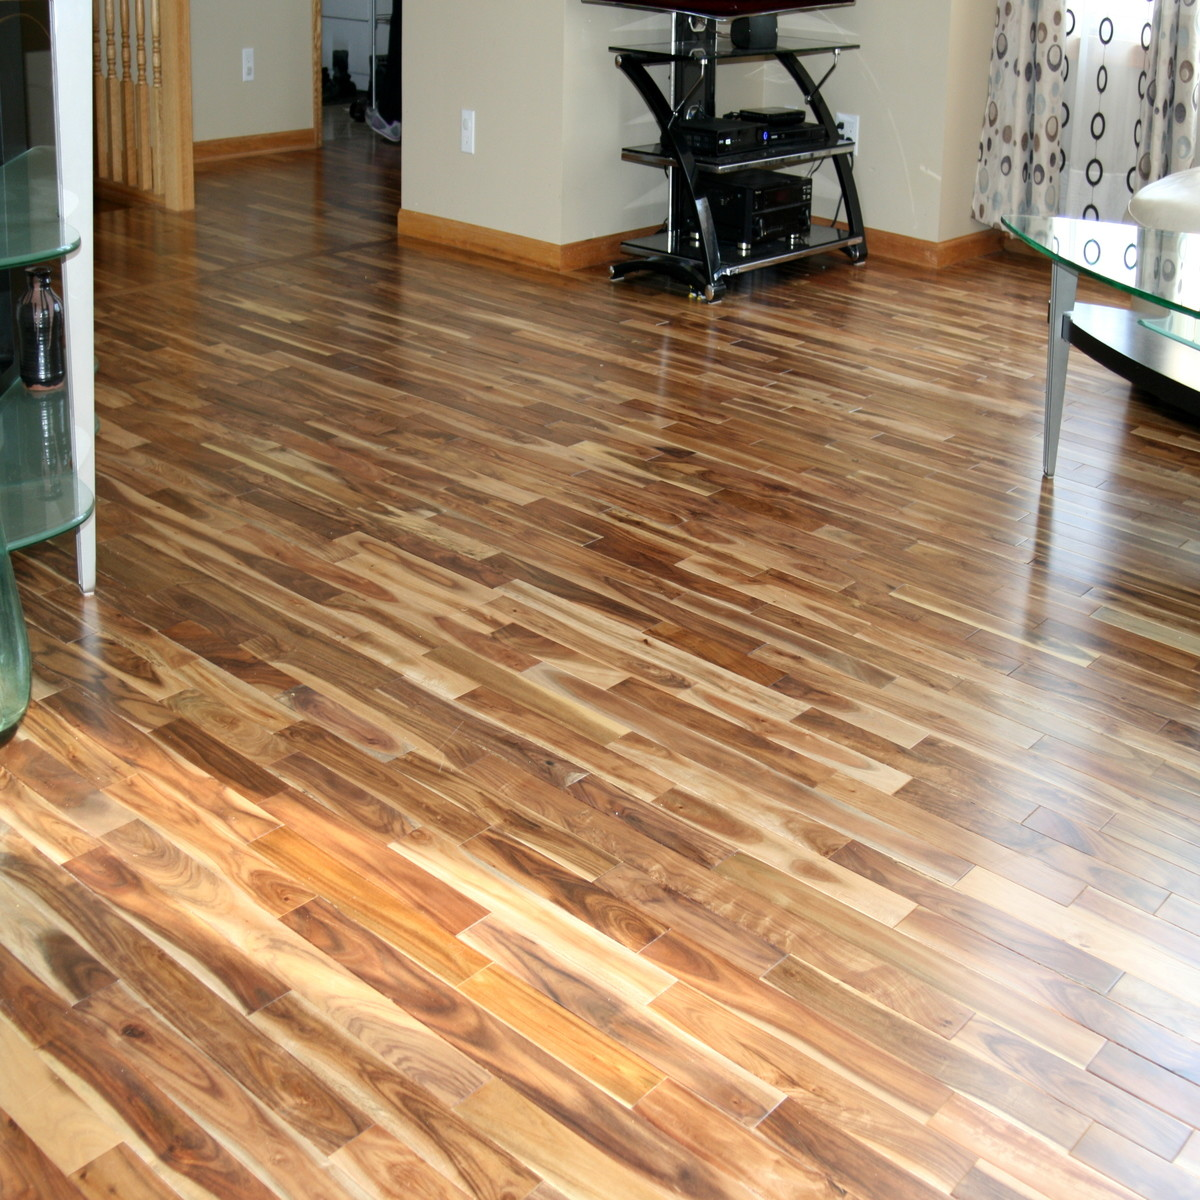 Acacia blonde hardwood flooring acacia confusa wood Casabella floors